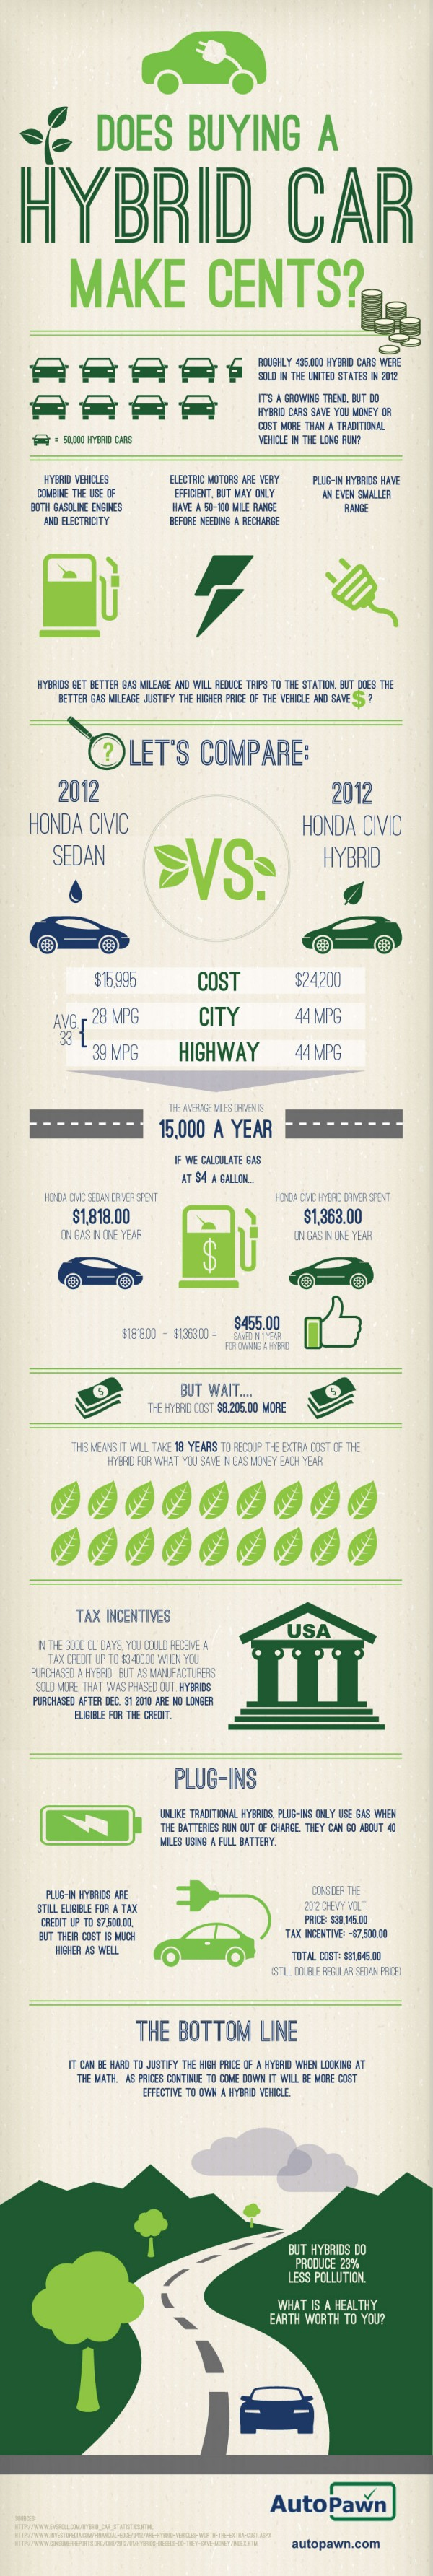 does buying a hybrid car make sense infographic